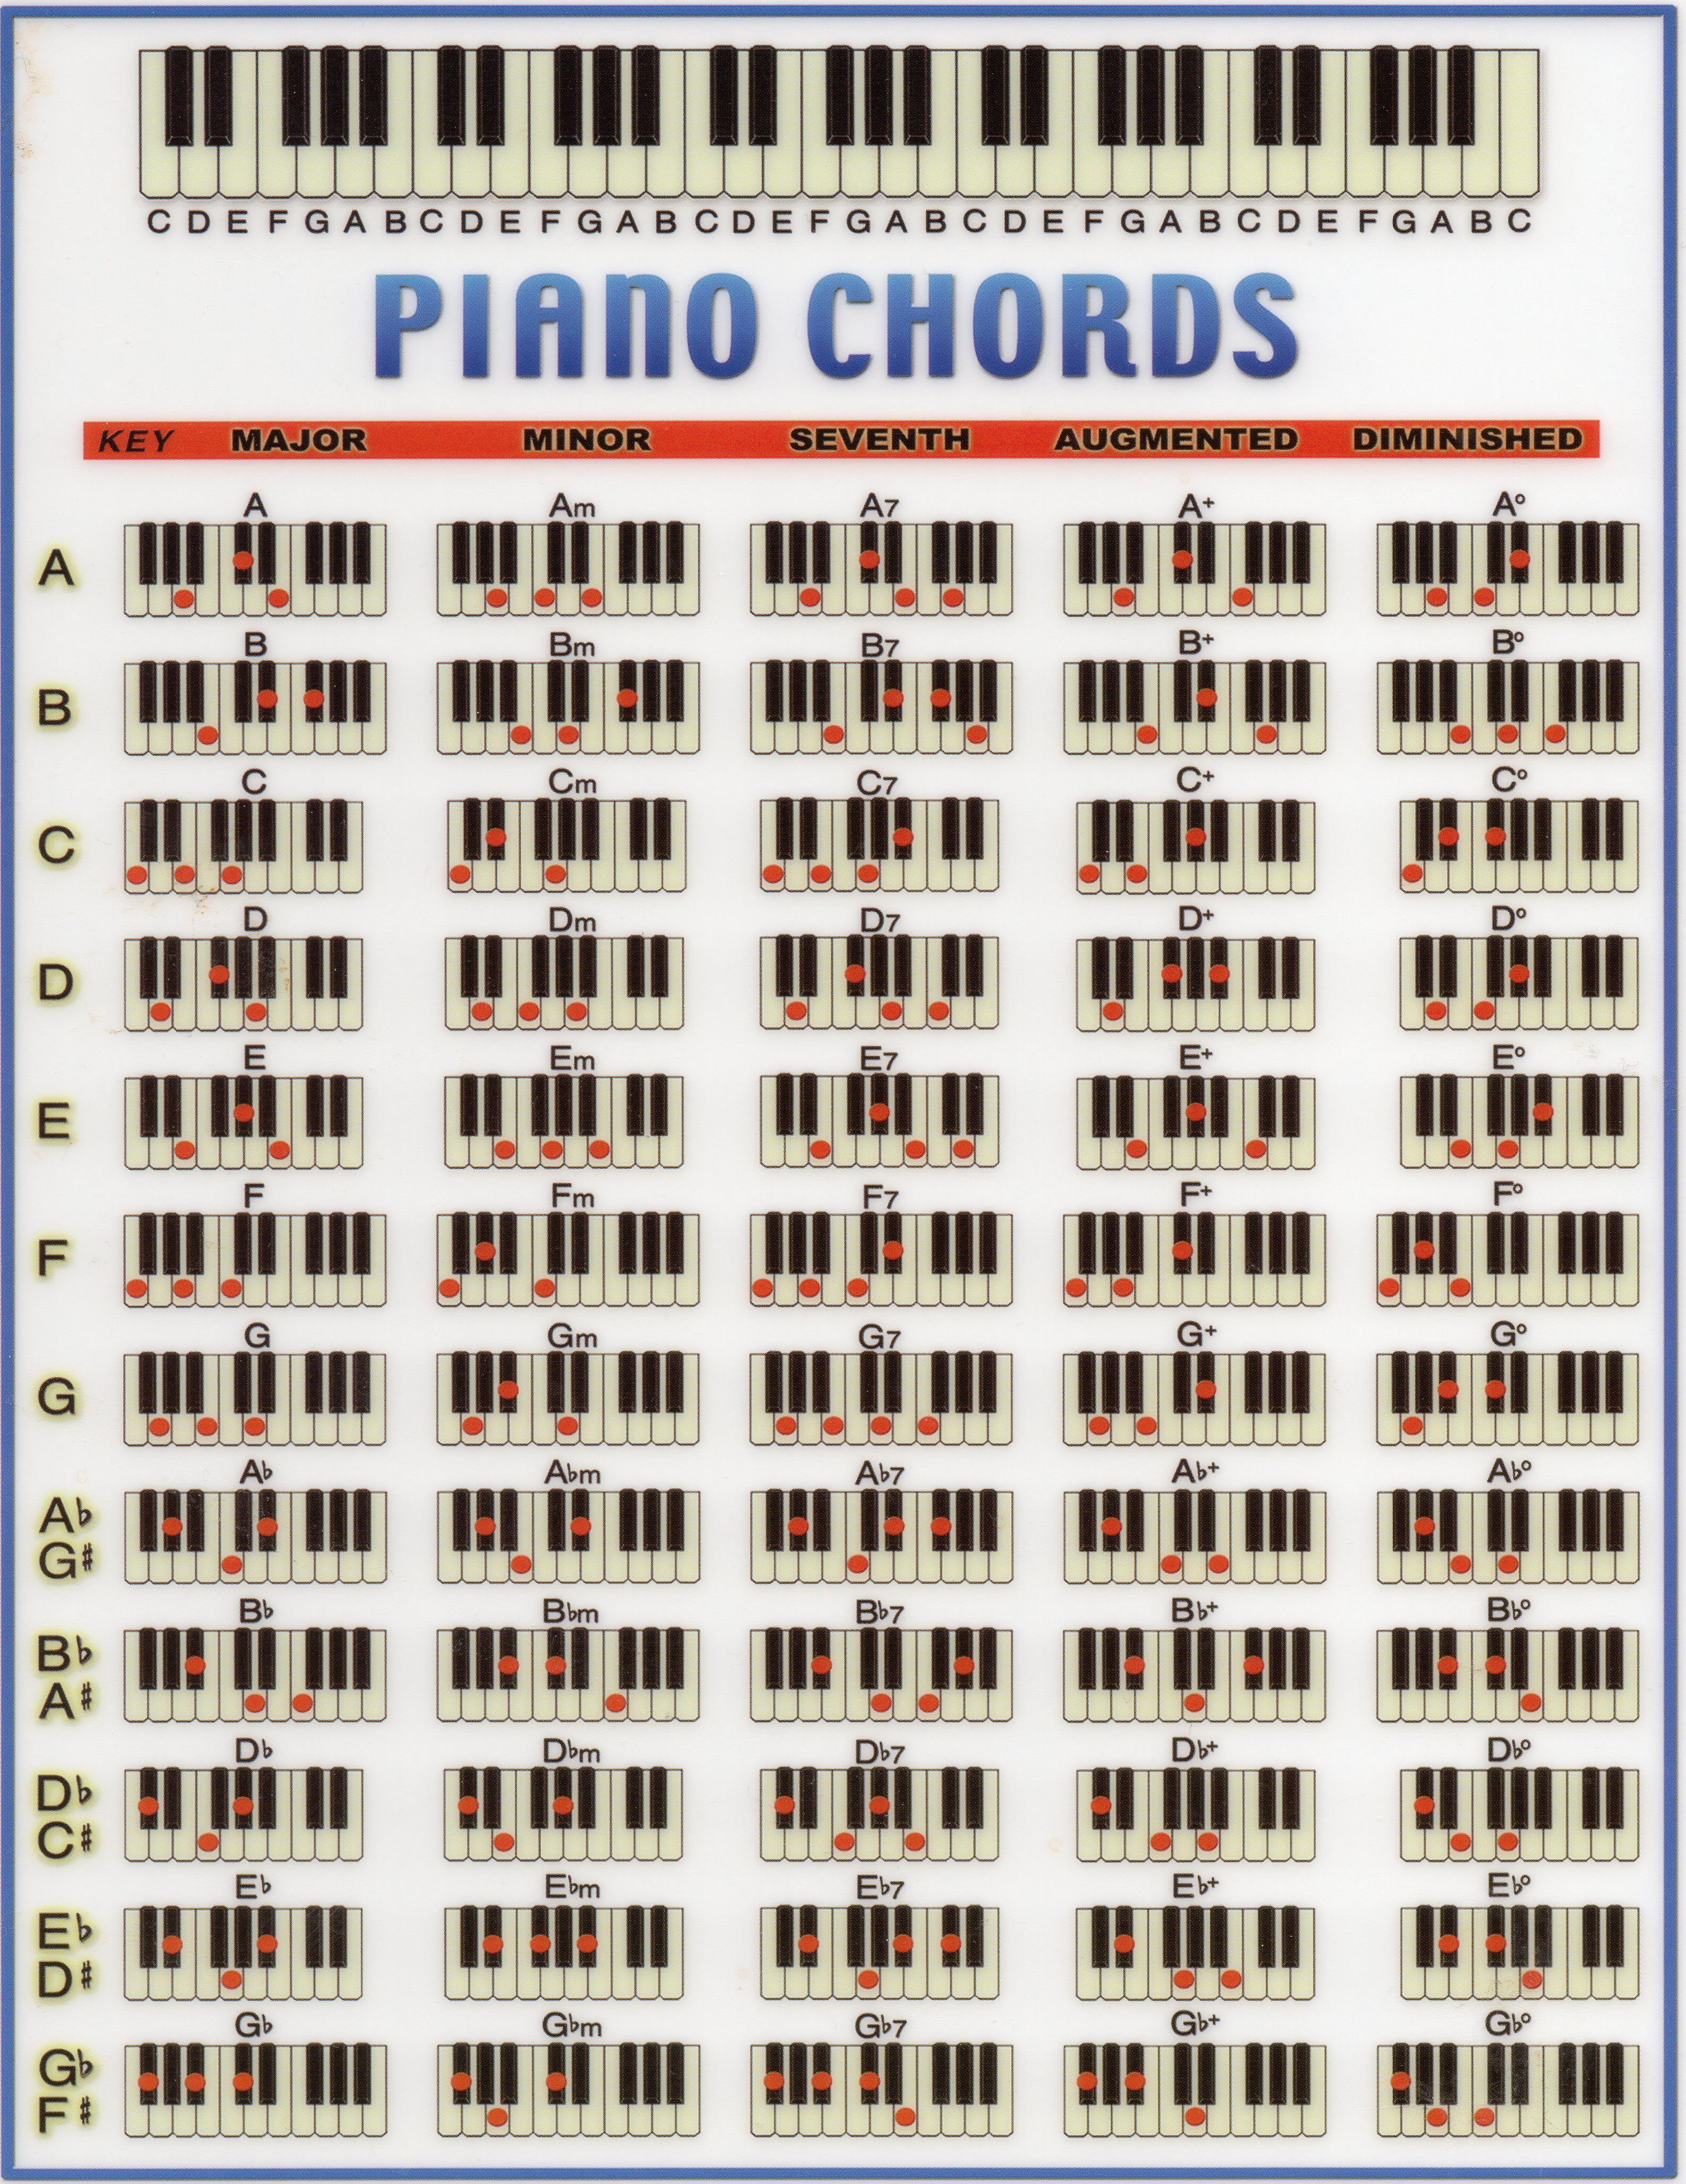 piano chord chart music theory pinterest. Black Bedroom Furniture Sets. Home Design Ideas